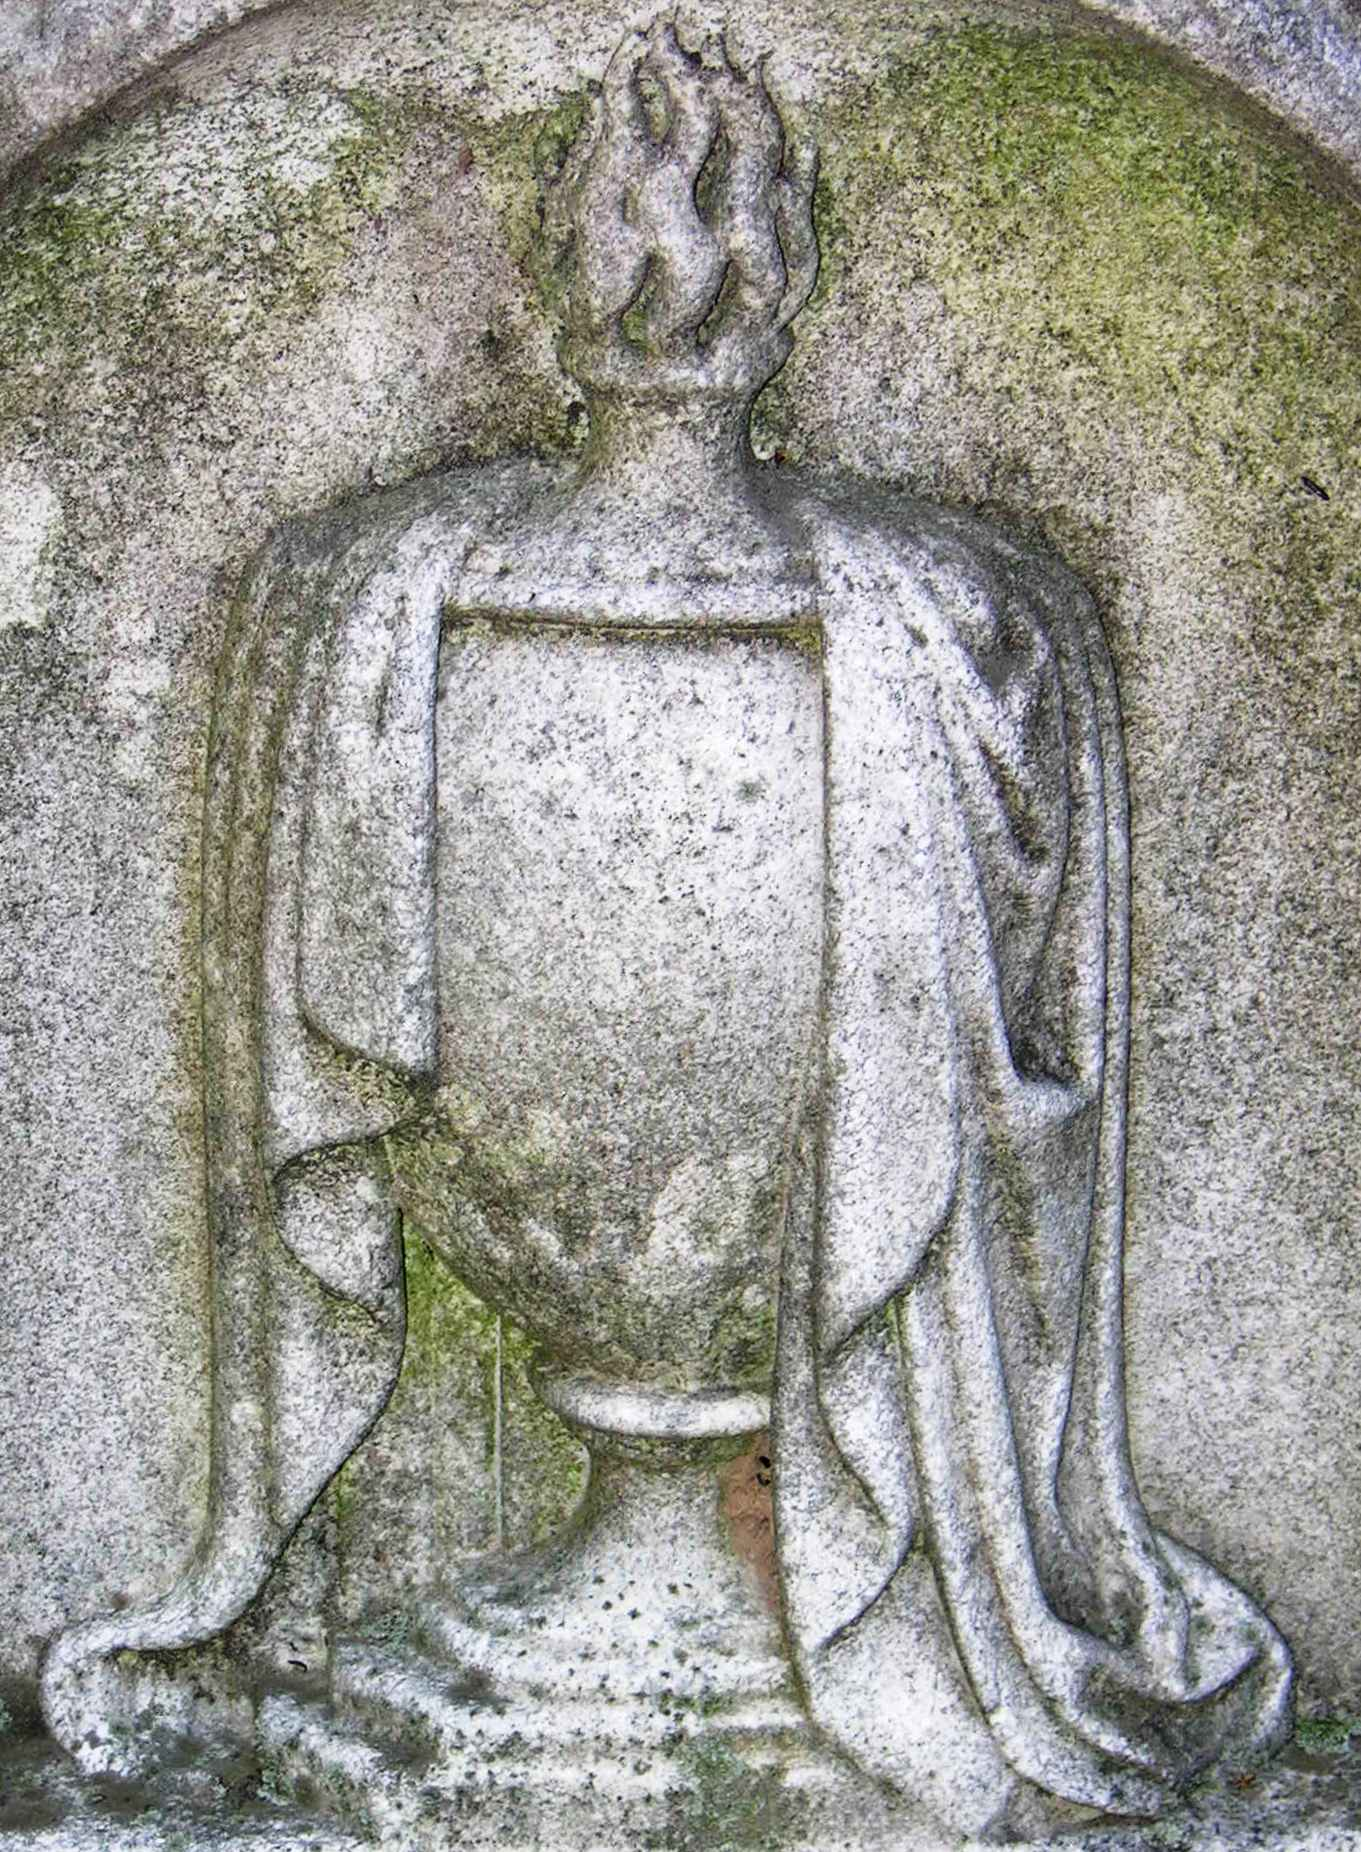 Urn draped with cloth.